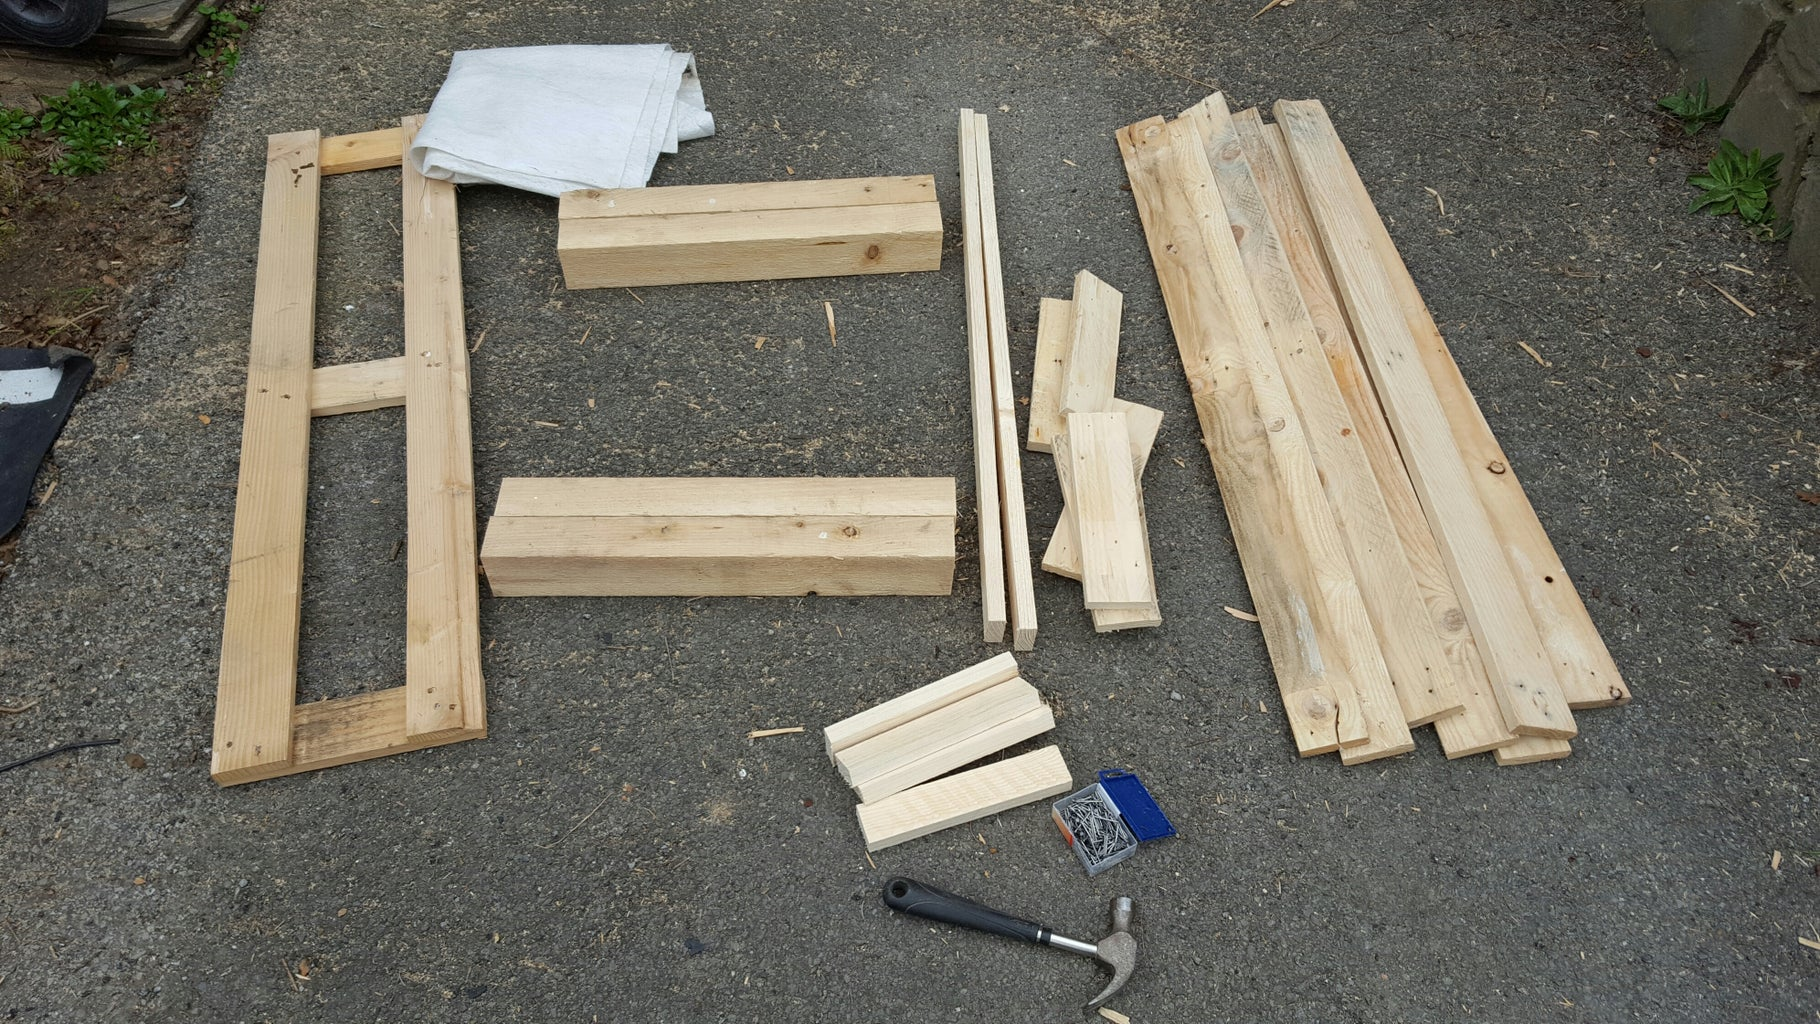 Find Some Pallets and Cut Them Down